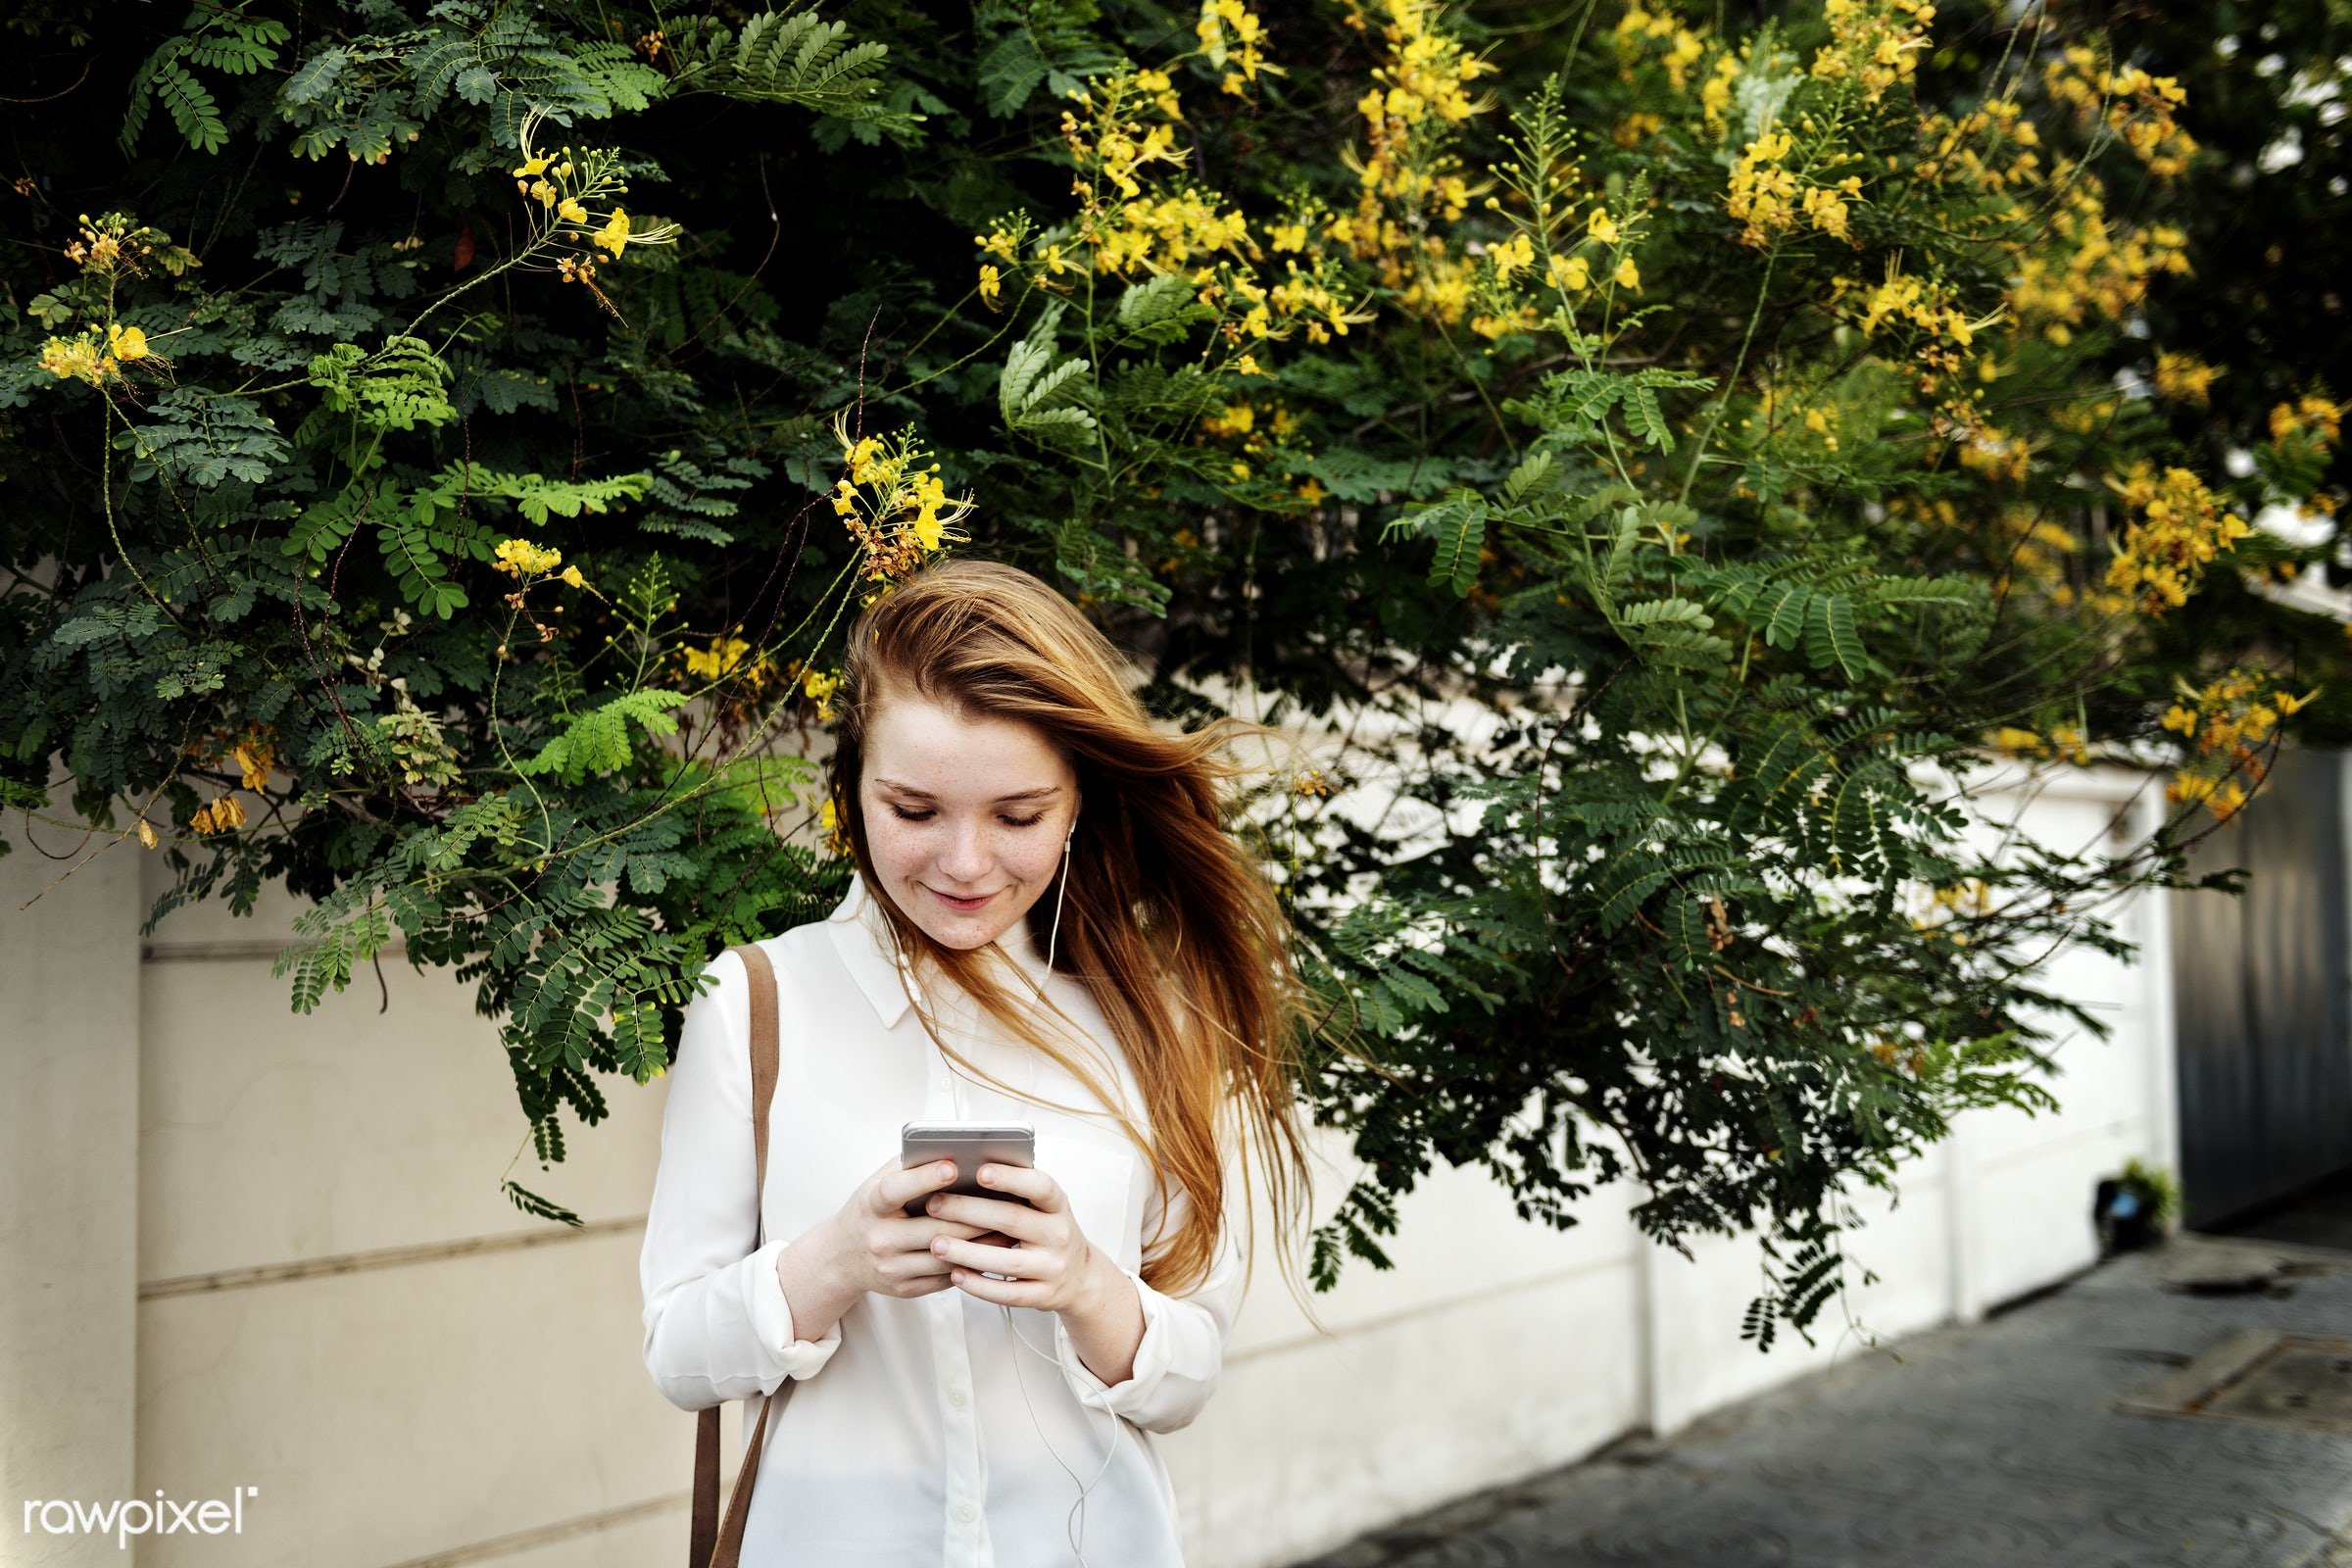 alone, caucasian, cellphone, cheerful, communication, connection, device, digital, expression, face, girl, mobile phone,...